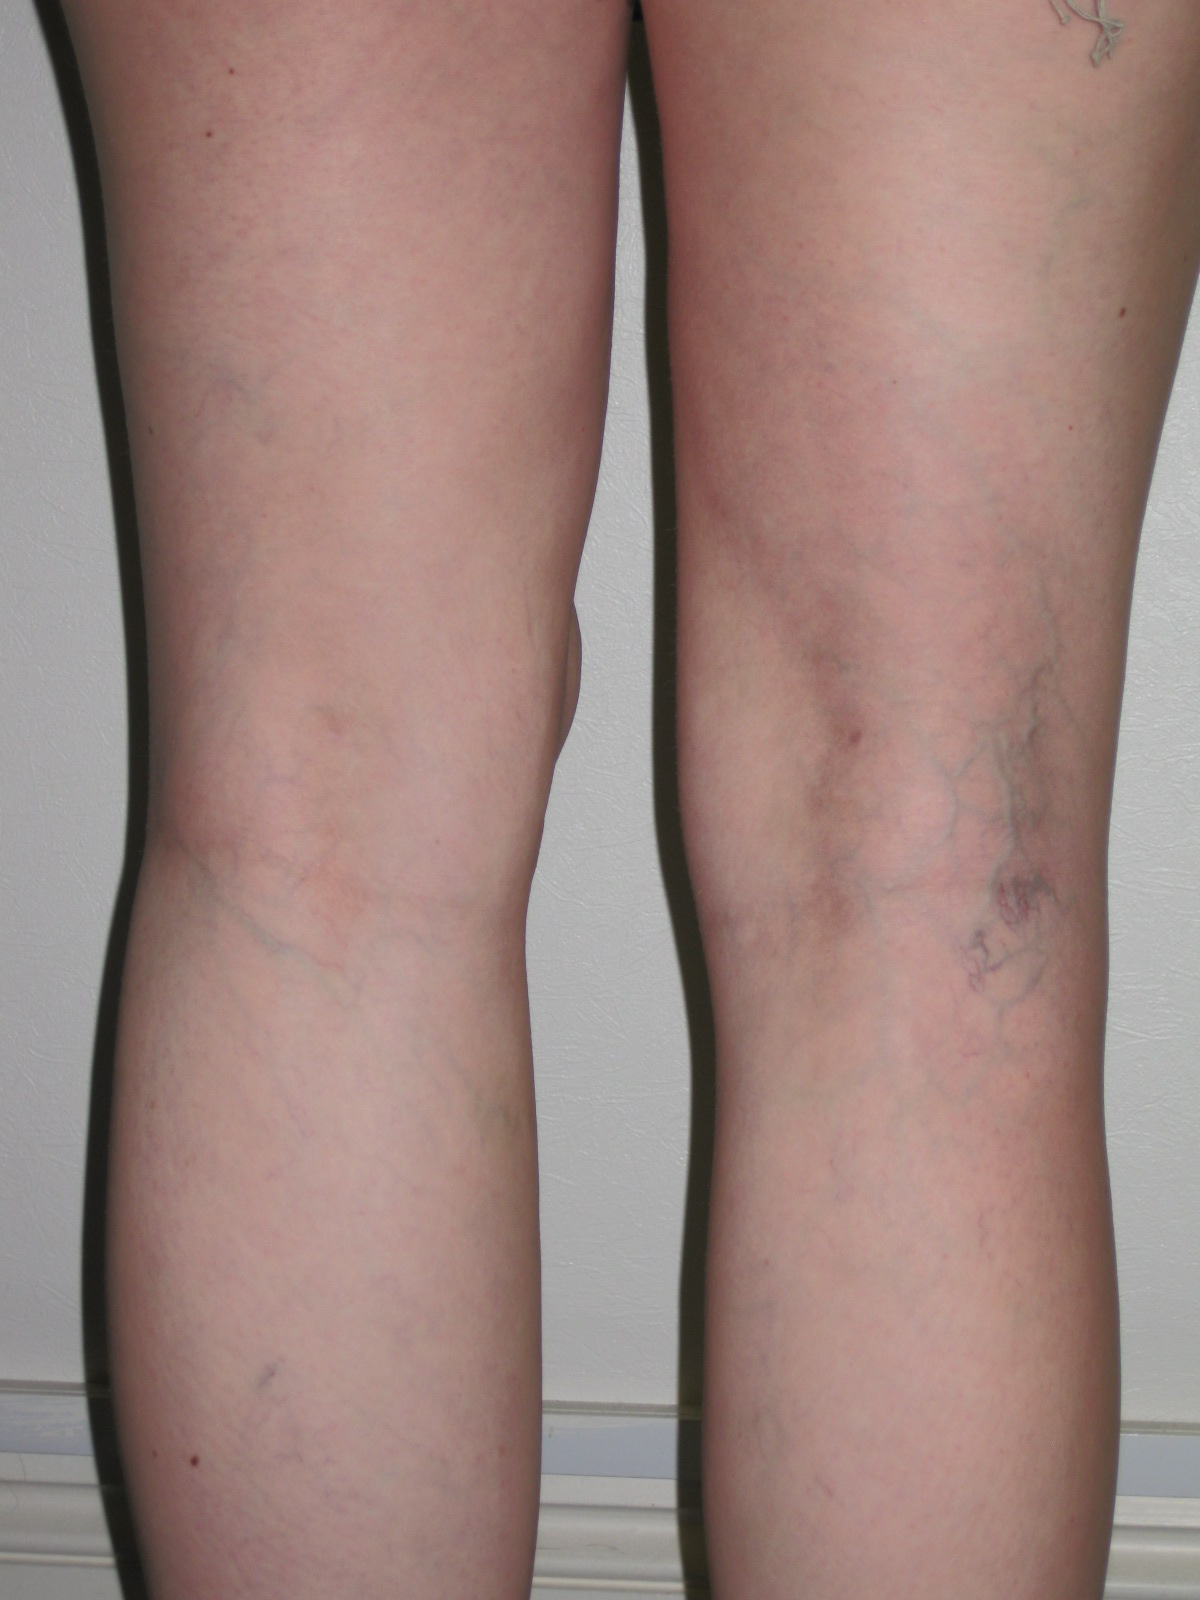 Knee liposuction : sculpting and refining